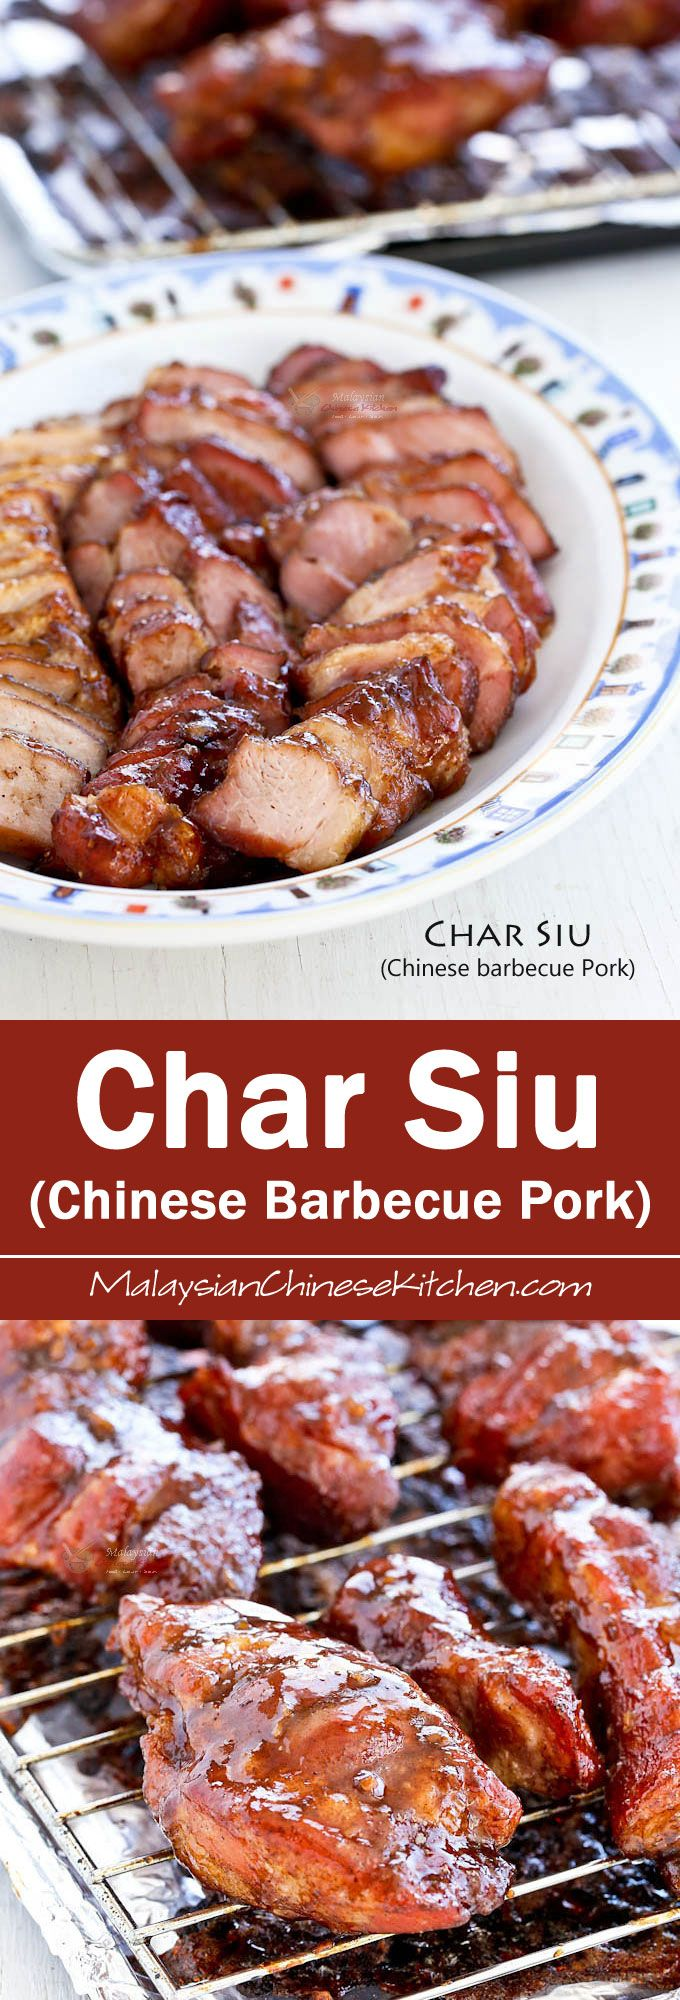 Easy to prepare oven roasted Char Siu (Chinese Barbecue Pork). Deliciously sticky, sweet, and savory. Perfect with steamed rice or noodles. | MalaysianChineseKitchen.com